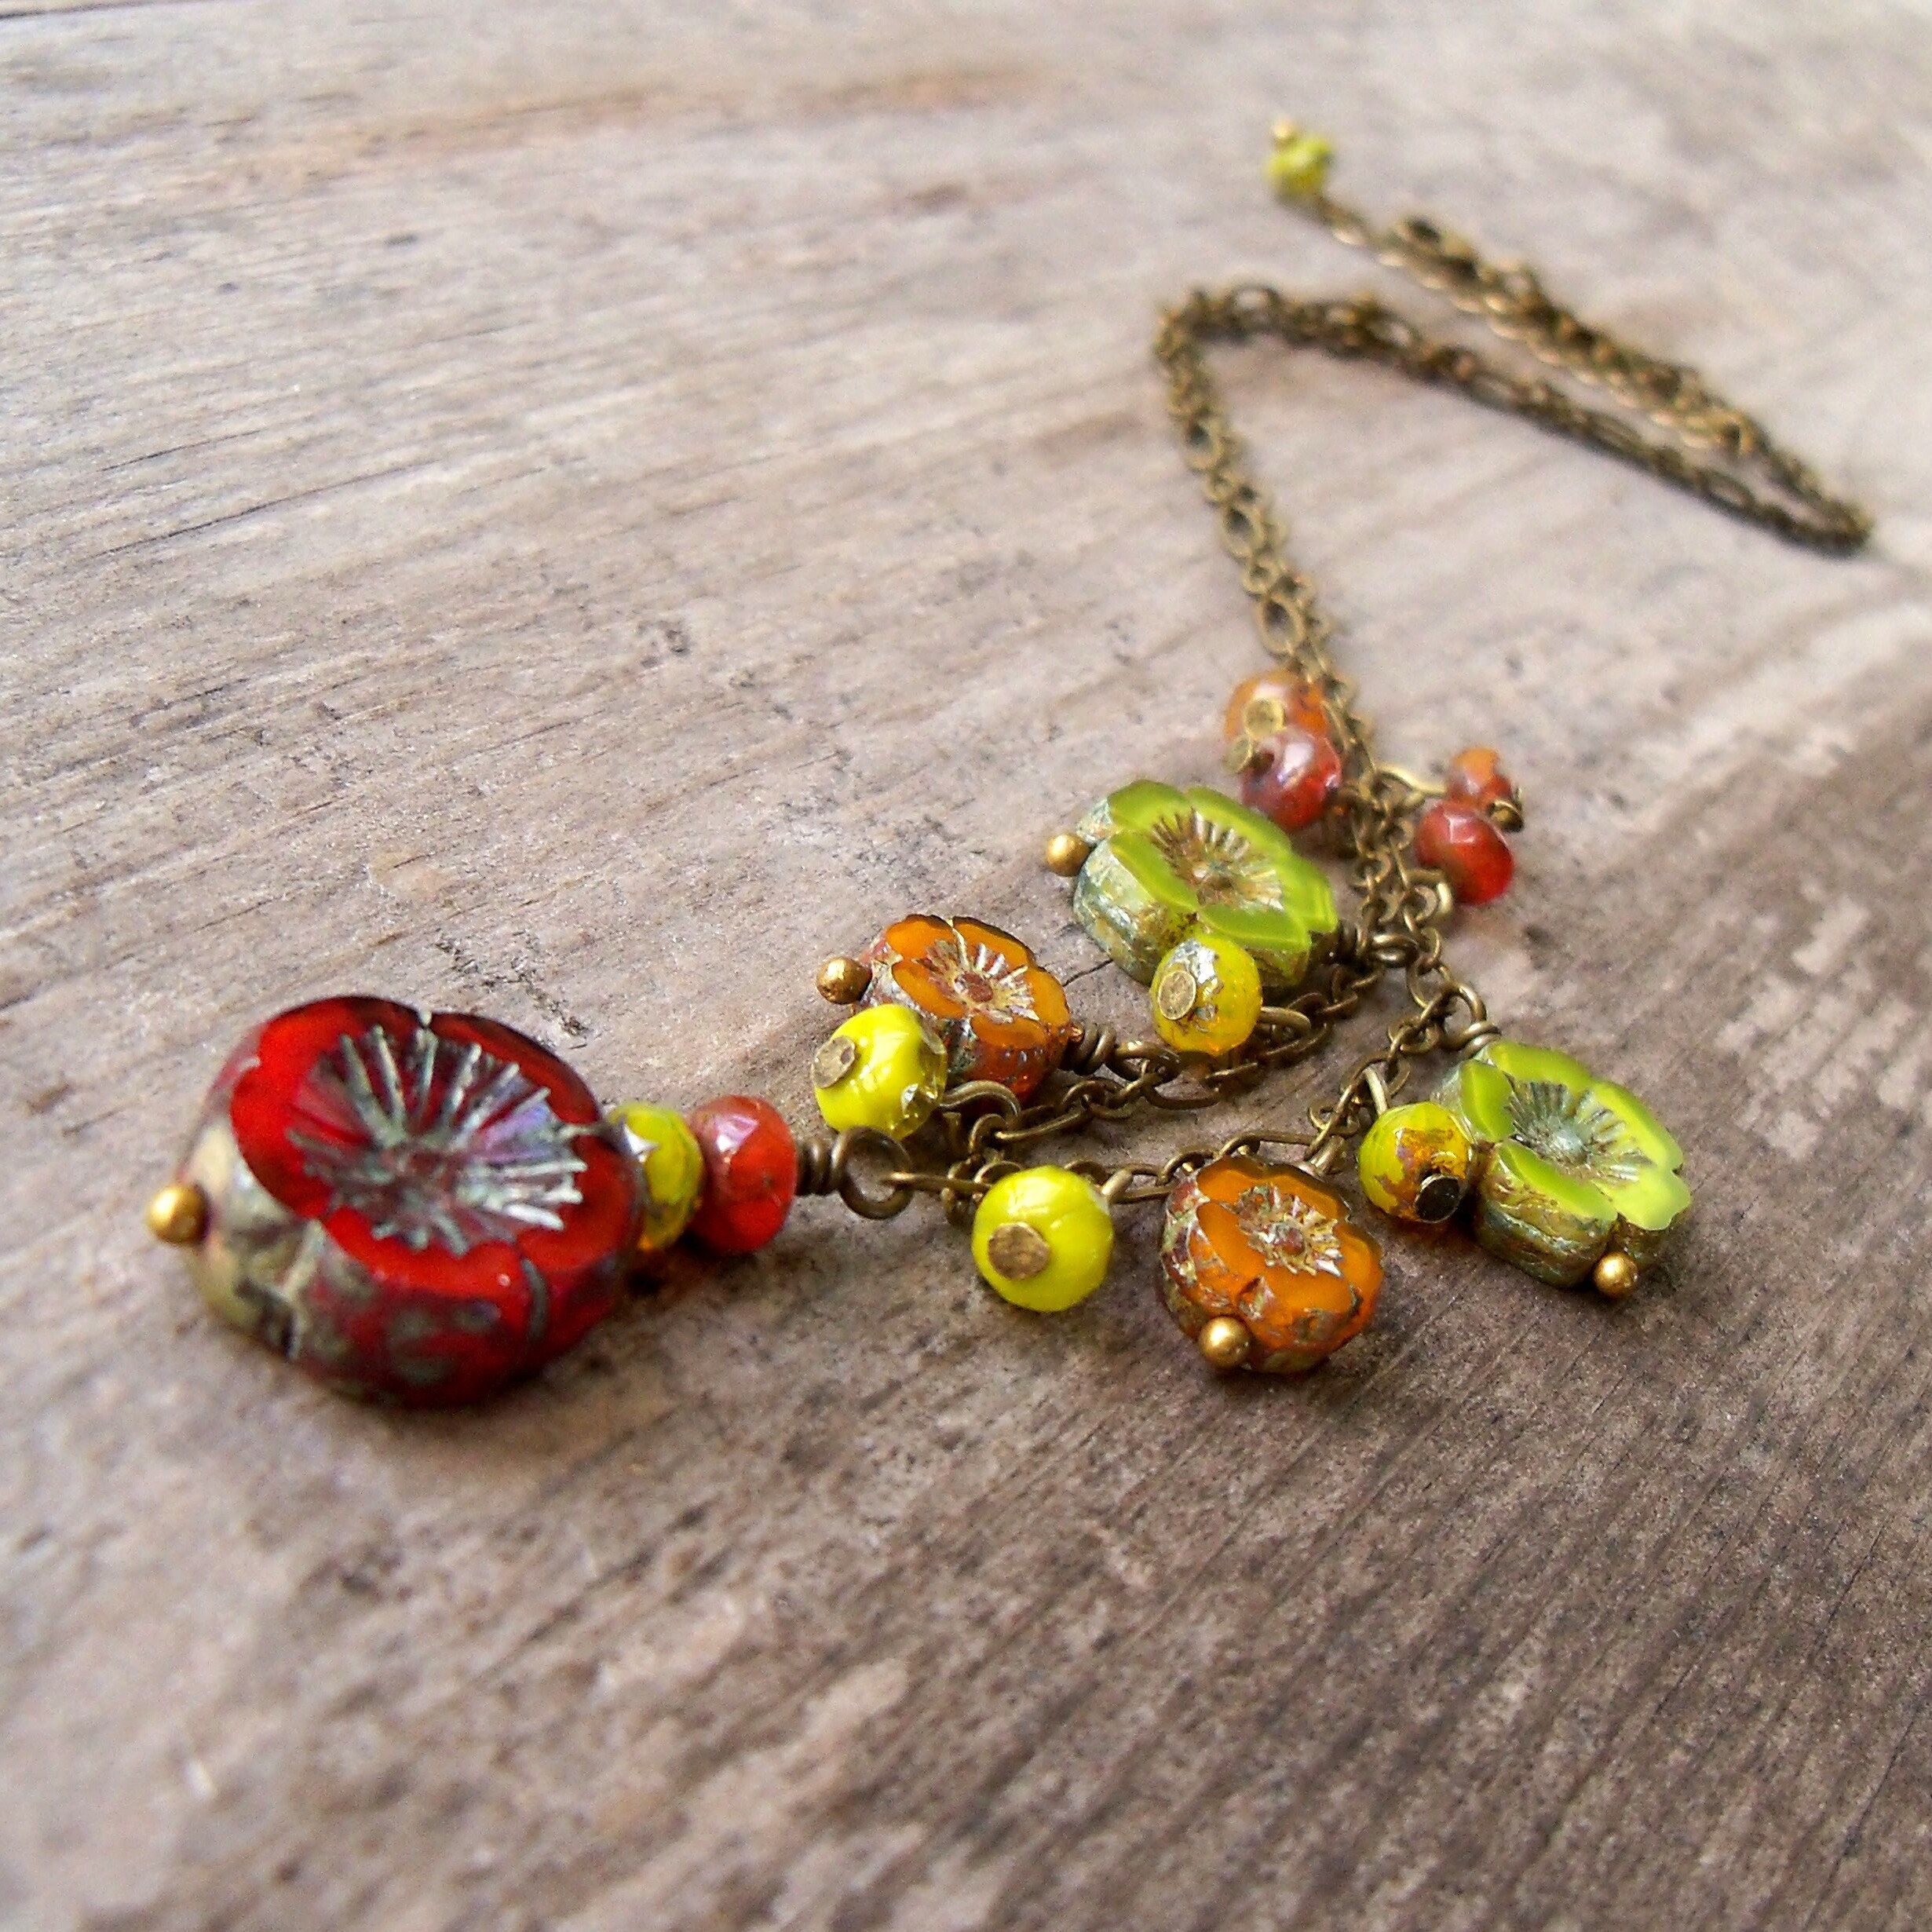 Orange and Green Series Floral Jewelry Bead Jewelry Handmade Necklace Green Necklace Orange Necklace Beaded Necklace